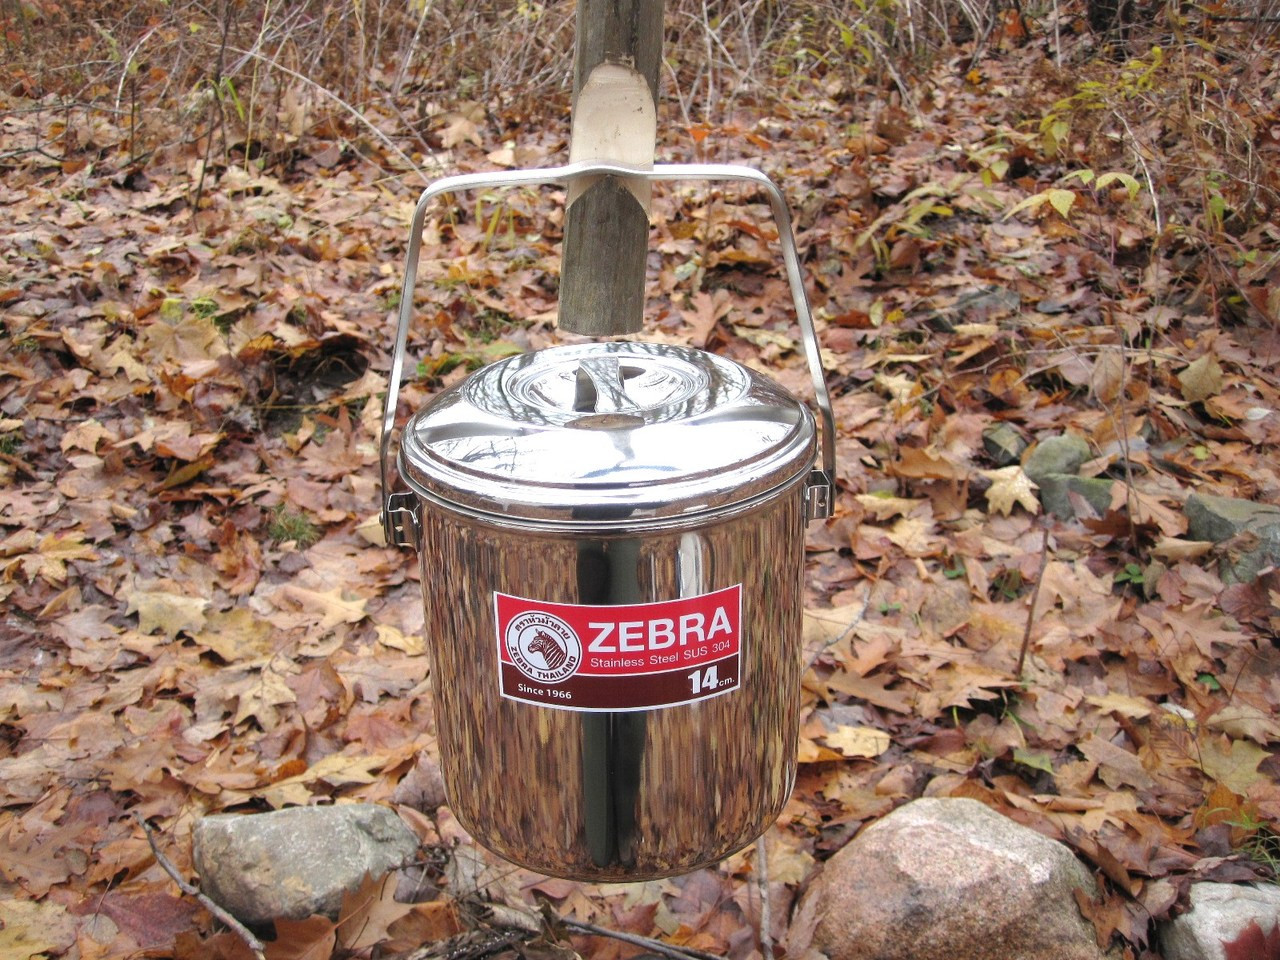 Zebra Stainless Billy Pot 14cm Bens Outdoor Products